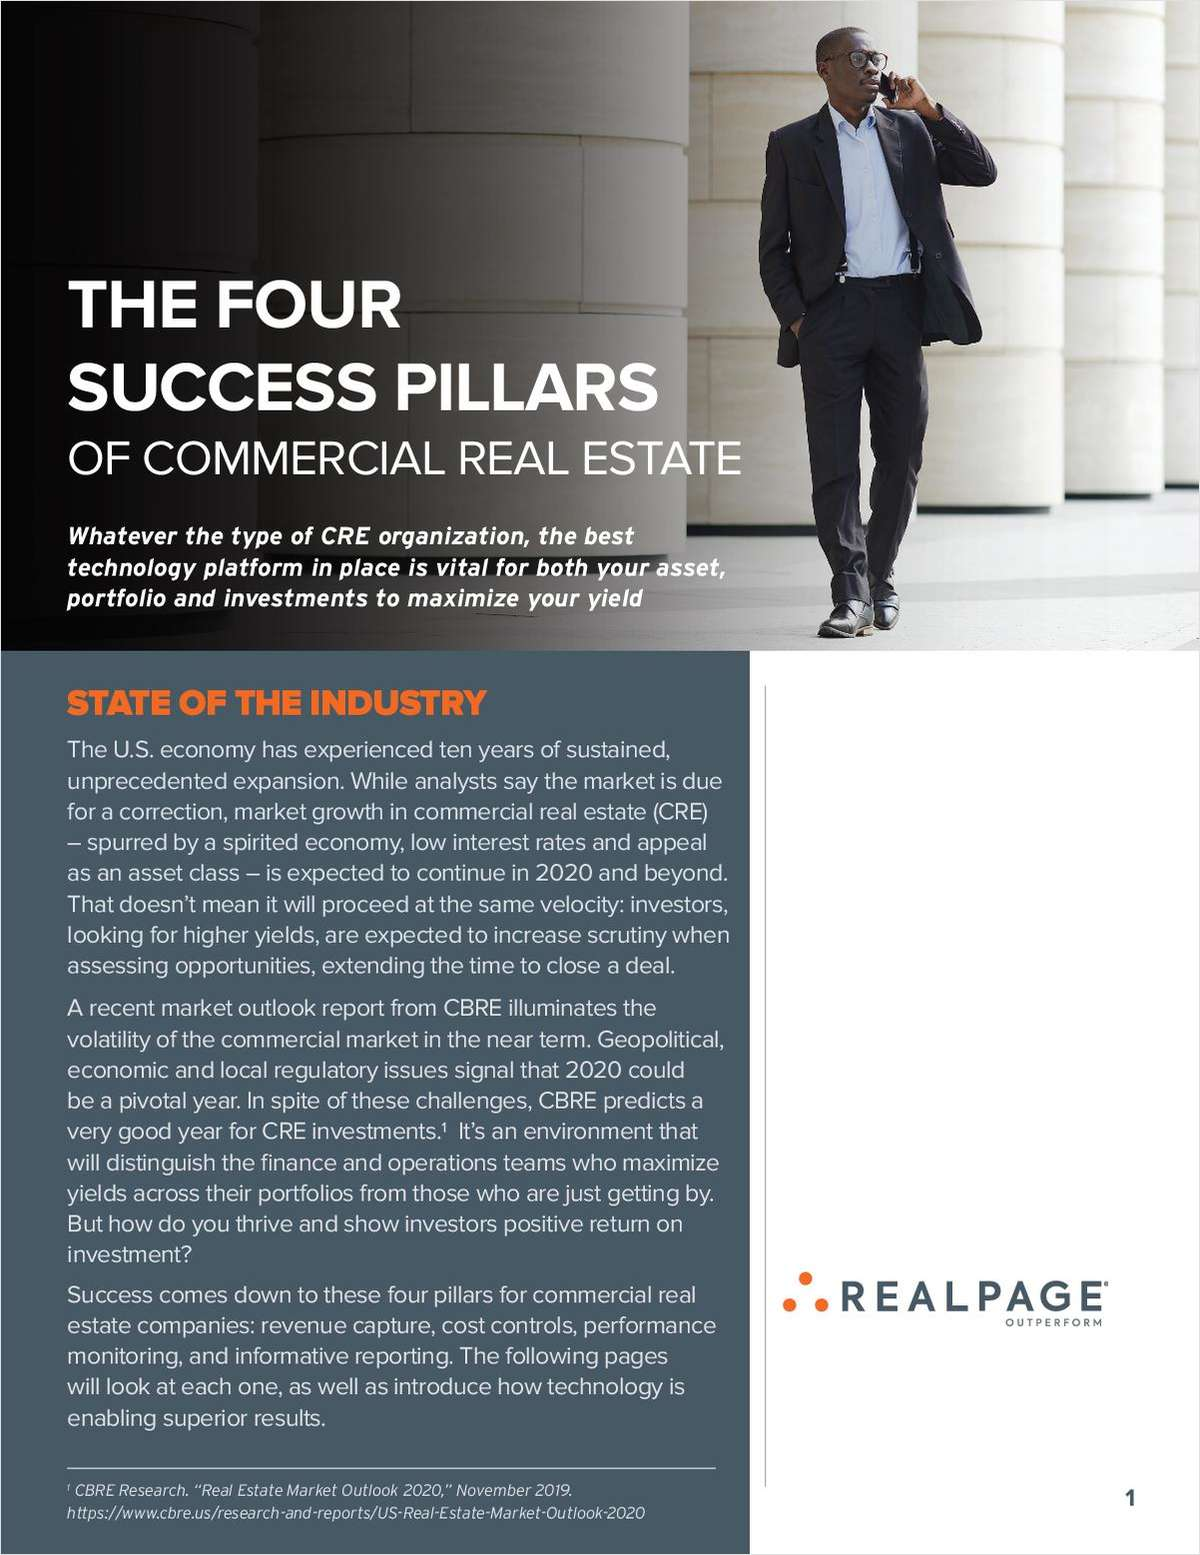 The Four Success Pillars of Commercial Real Estate